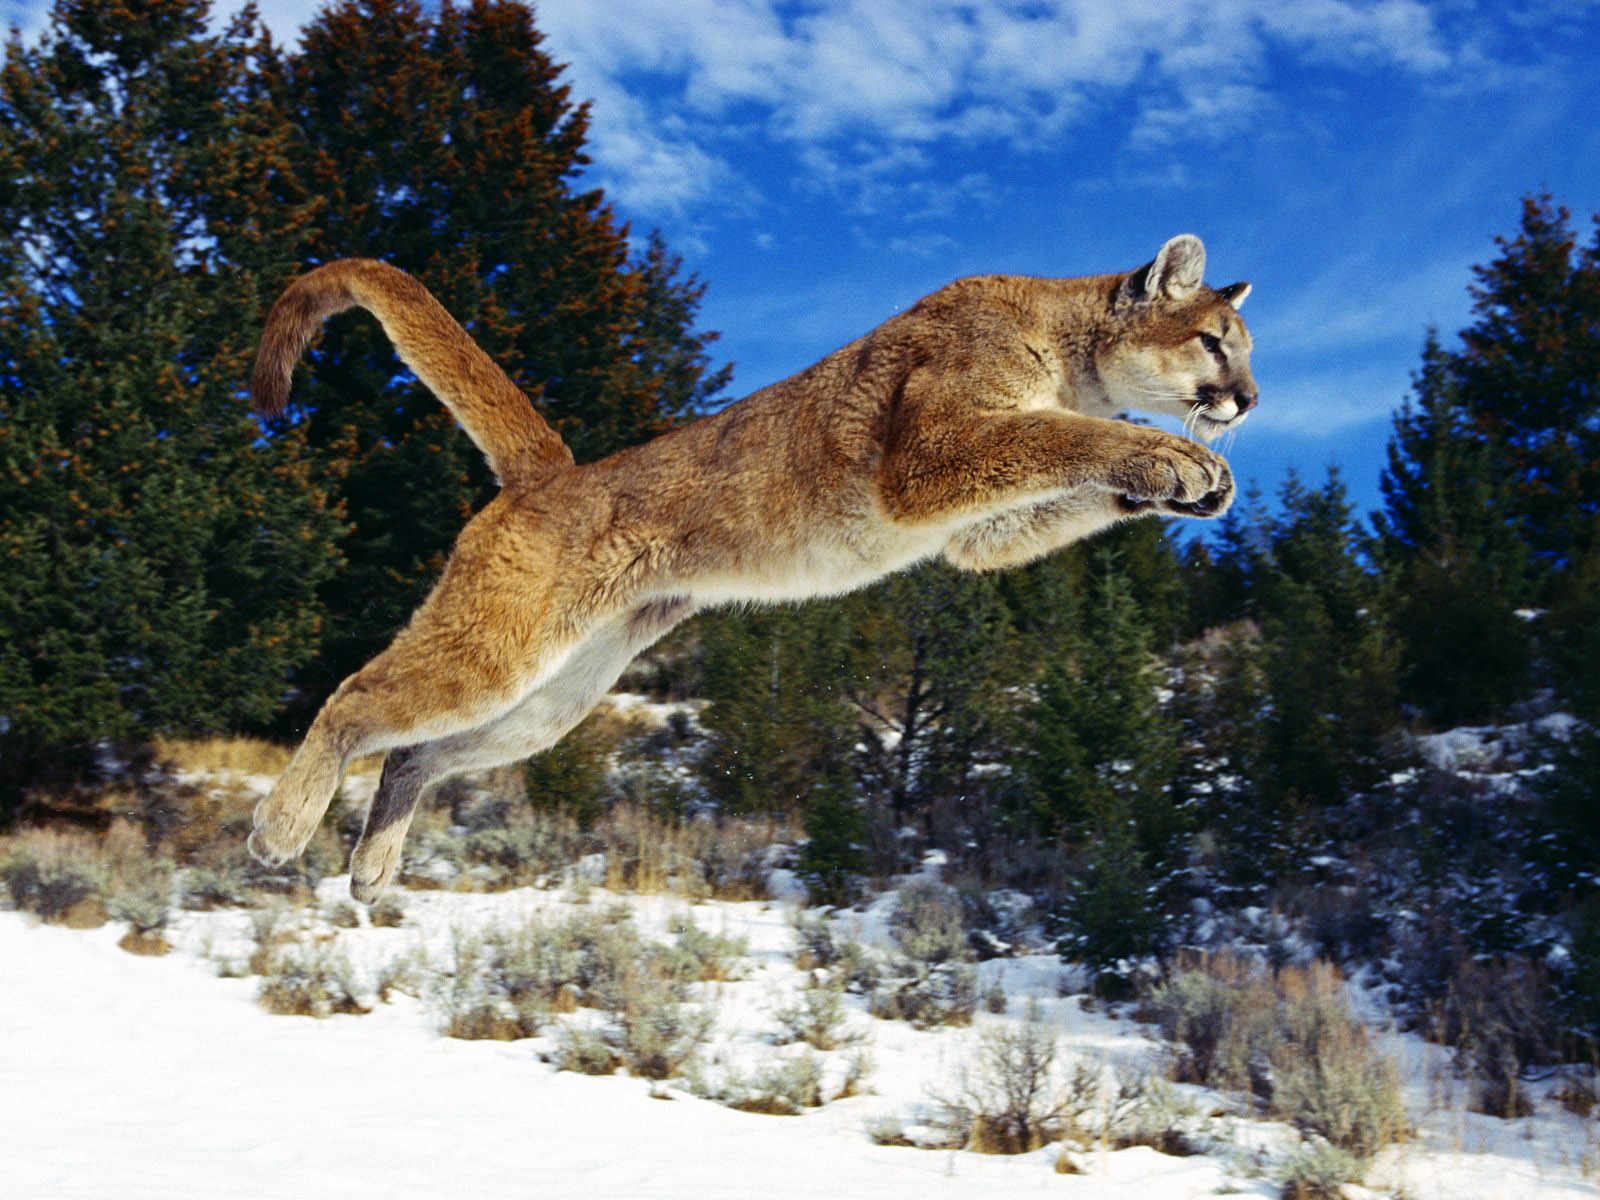 All Wallpapers Wildlife New Nice hd Wallpapers 2013 1600x1200